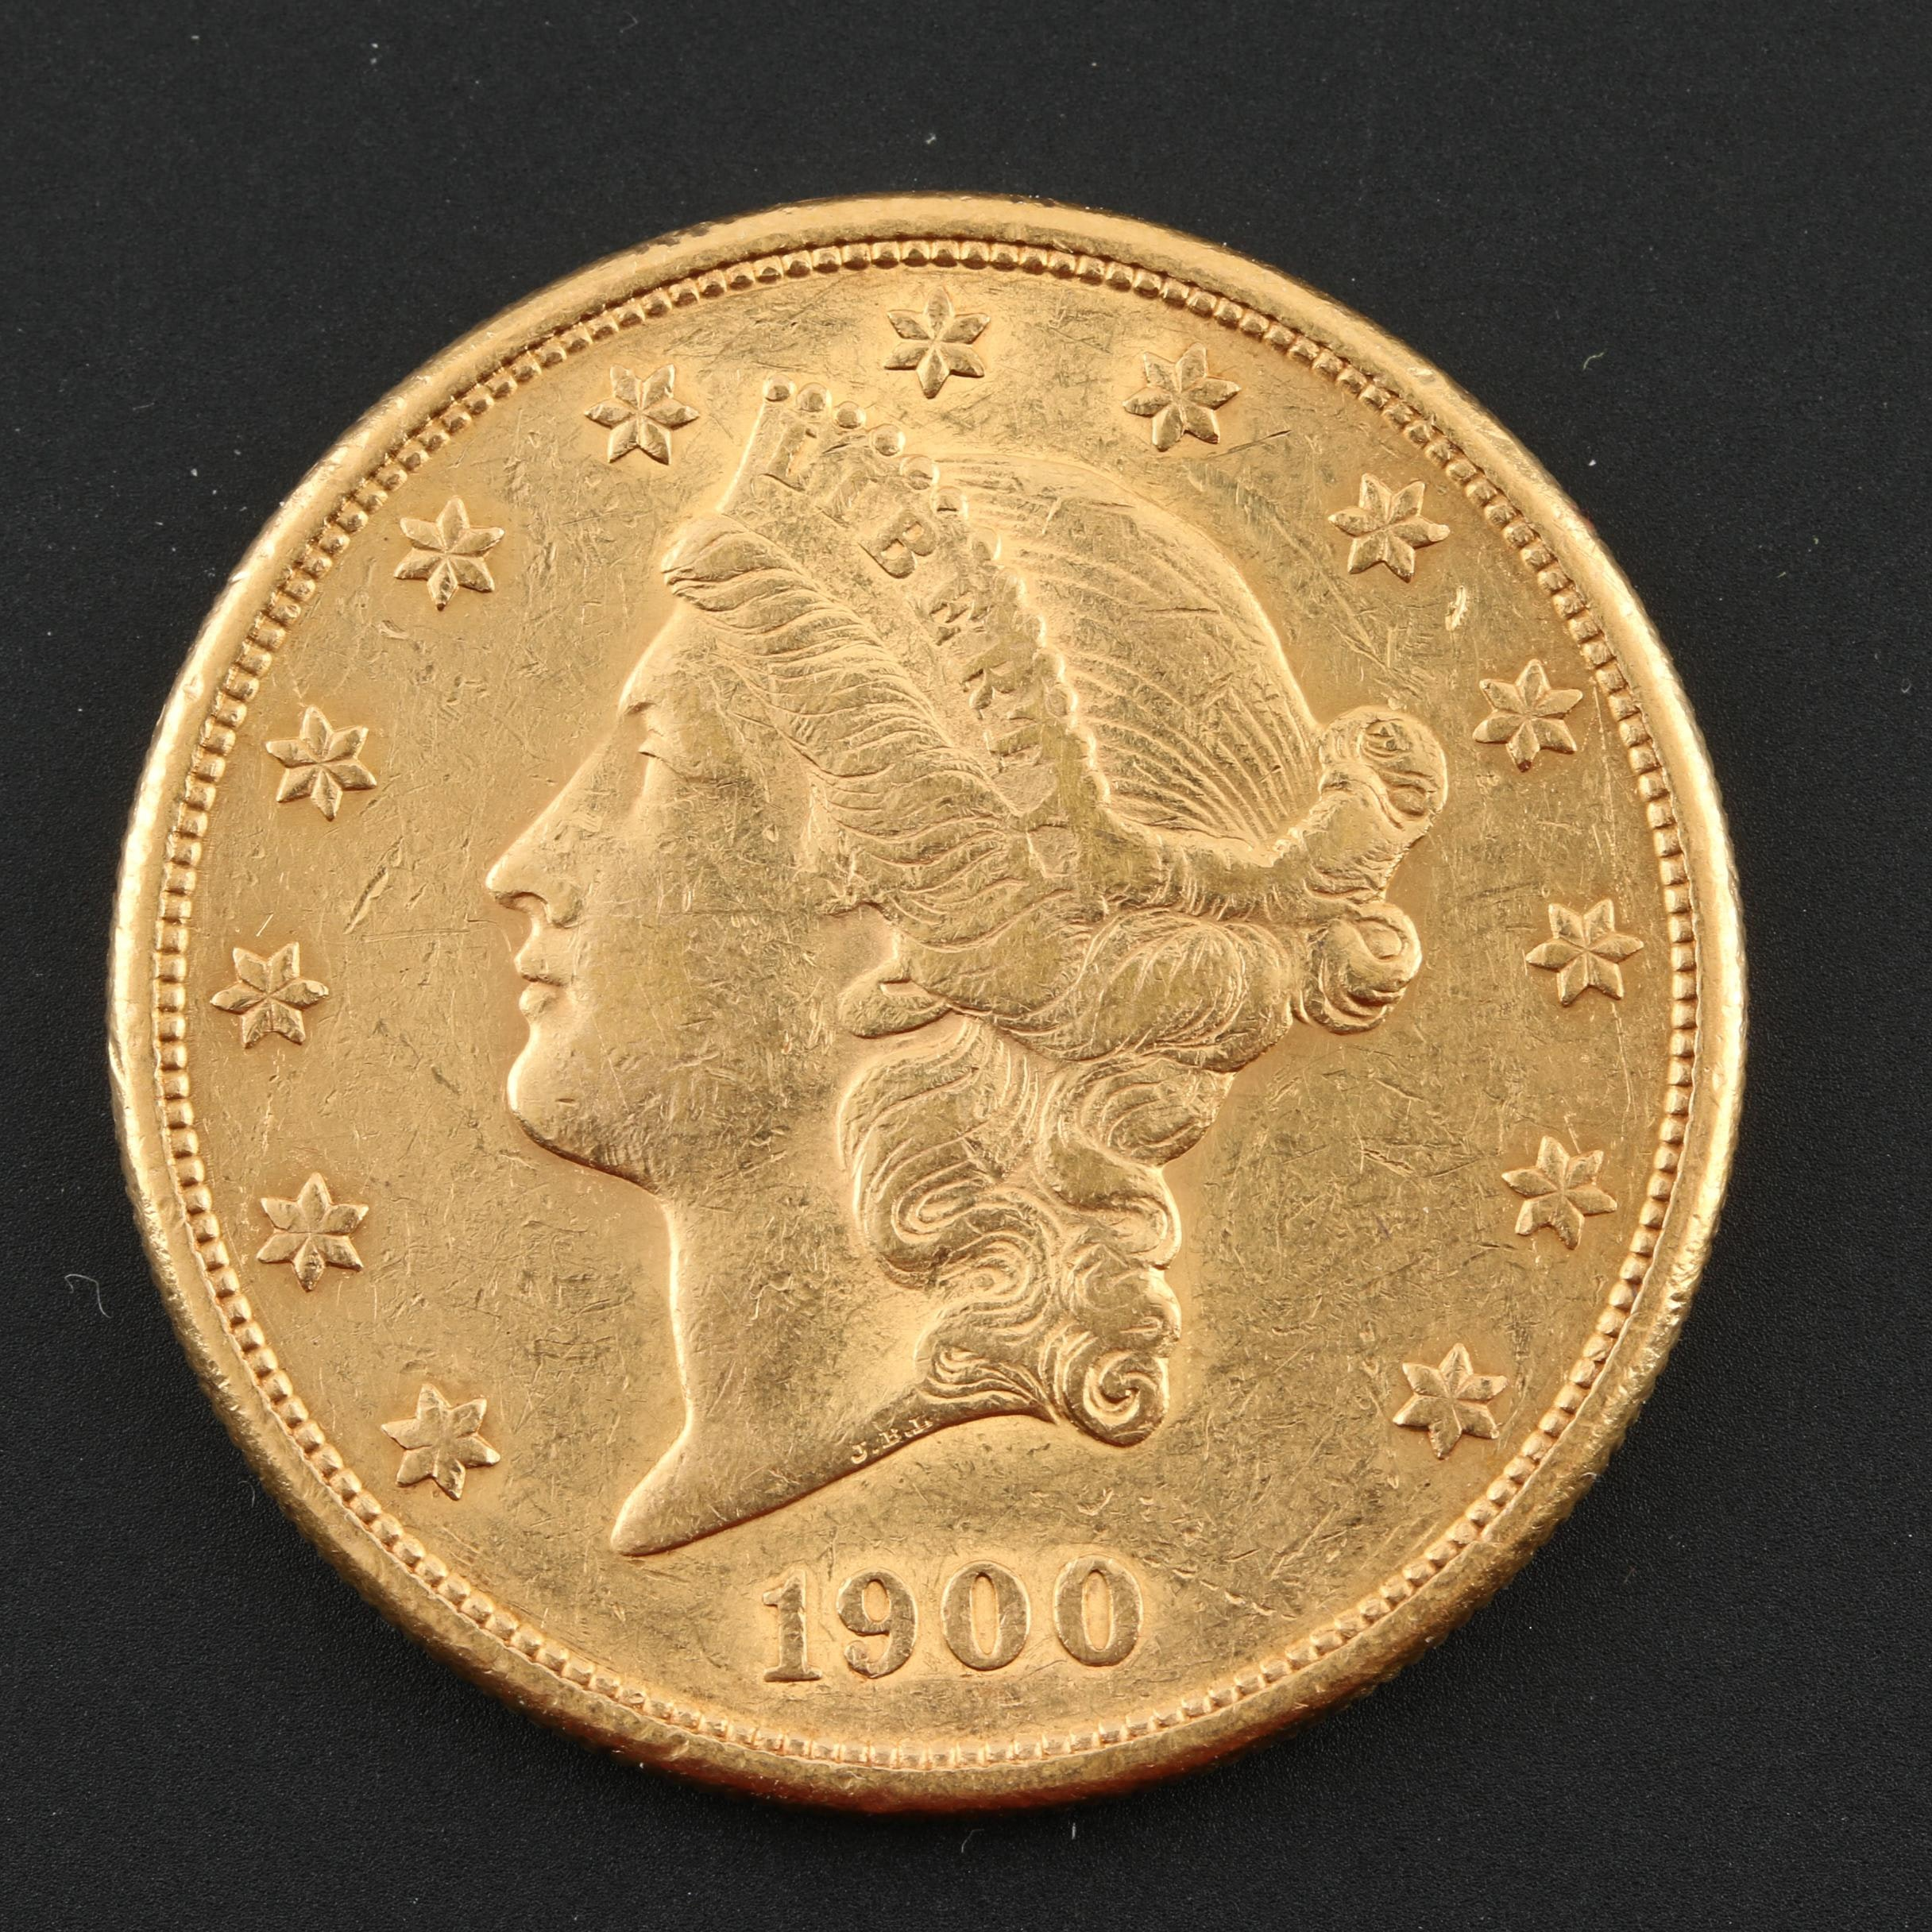 1900-S Liberty Head $20 Gold Coin